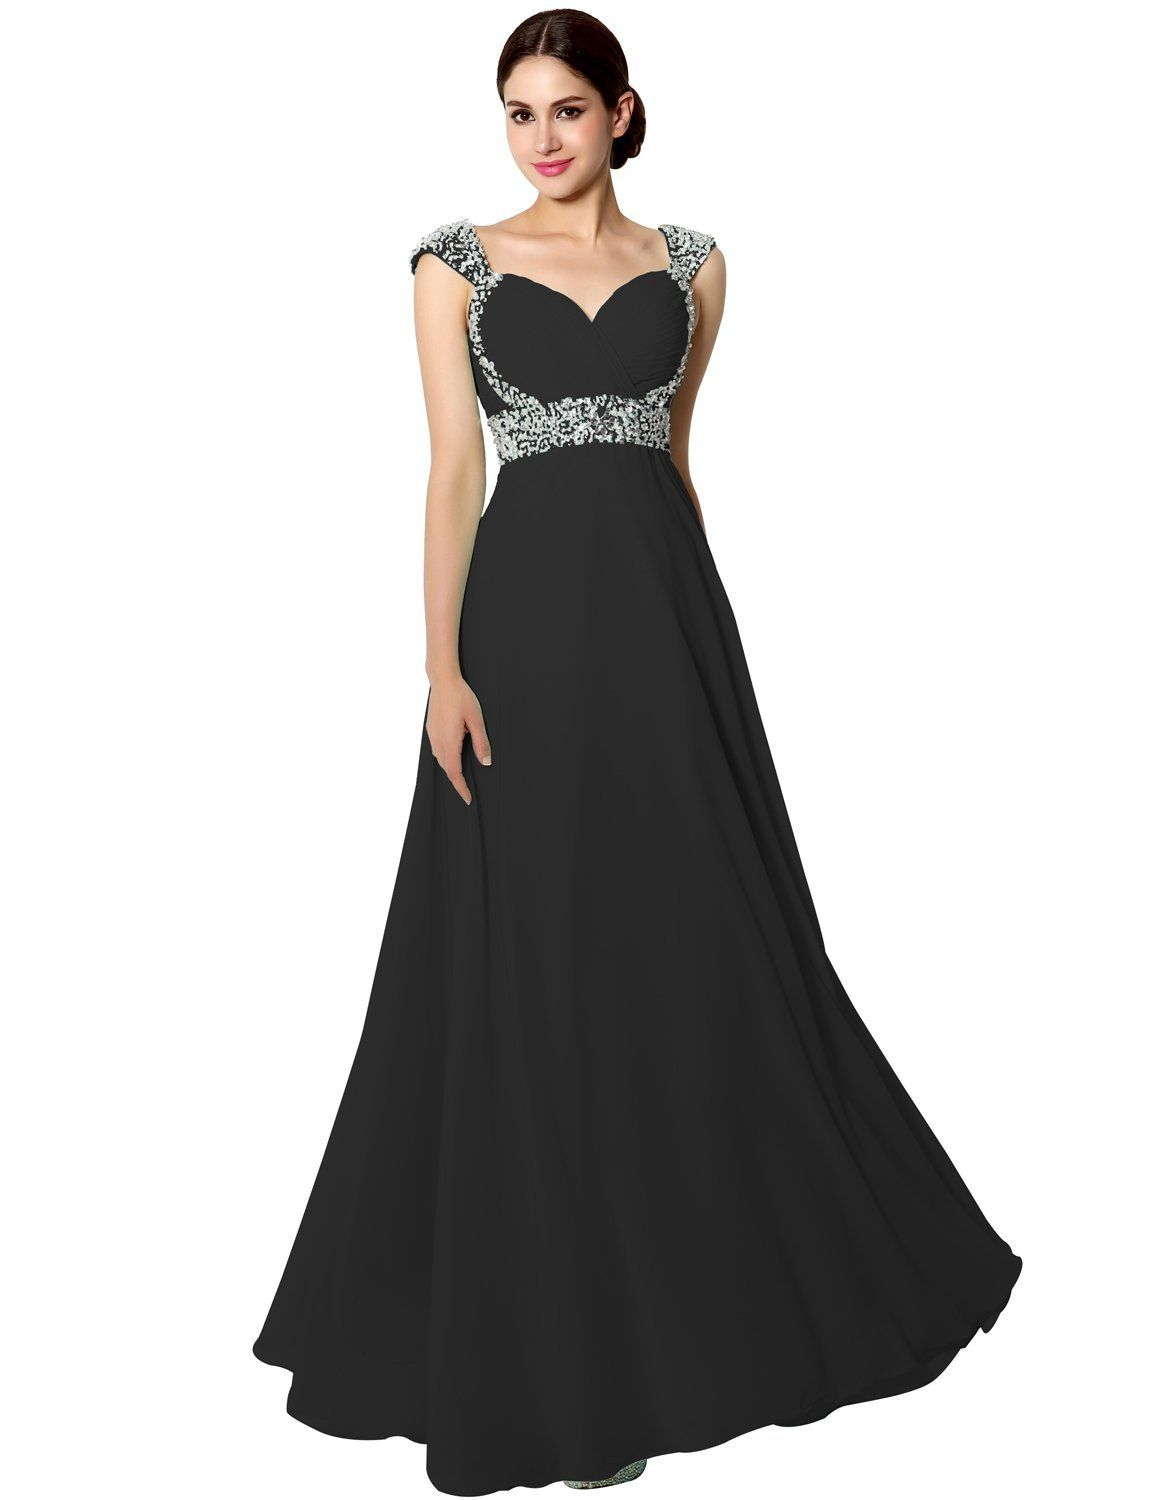 Sarahbridal Women's Long Chiffon A-line Beading Bridesmaid Dress Prom Gown  SD072 ** Check